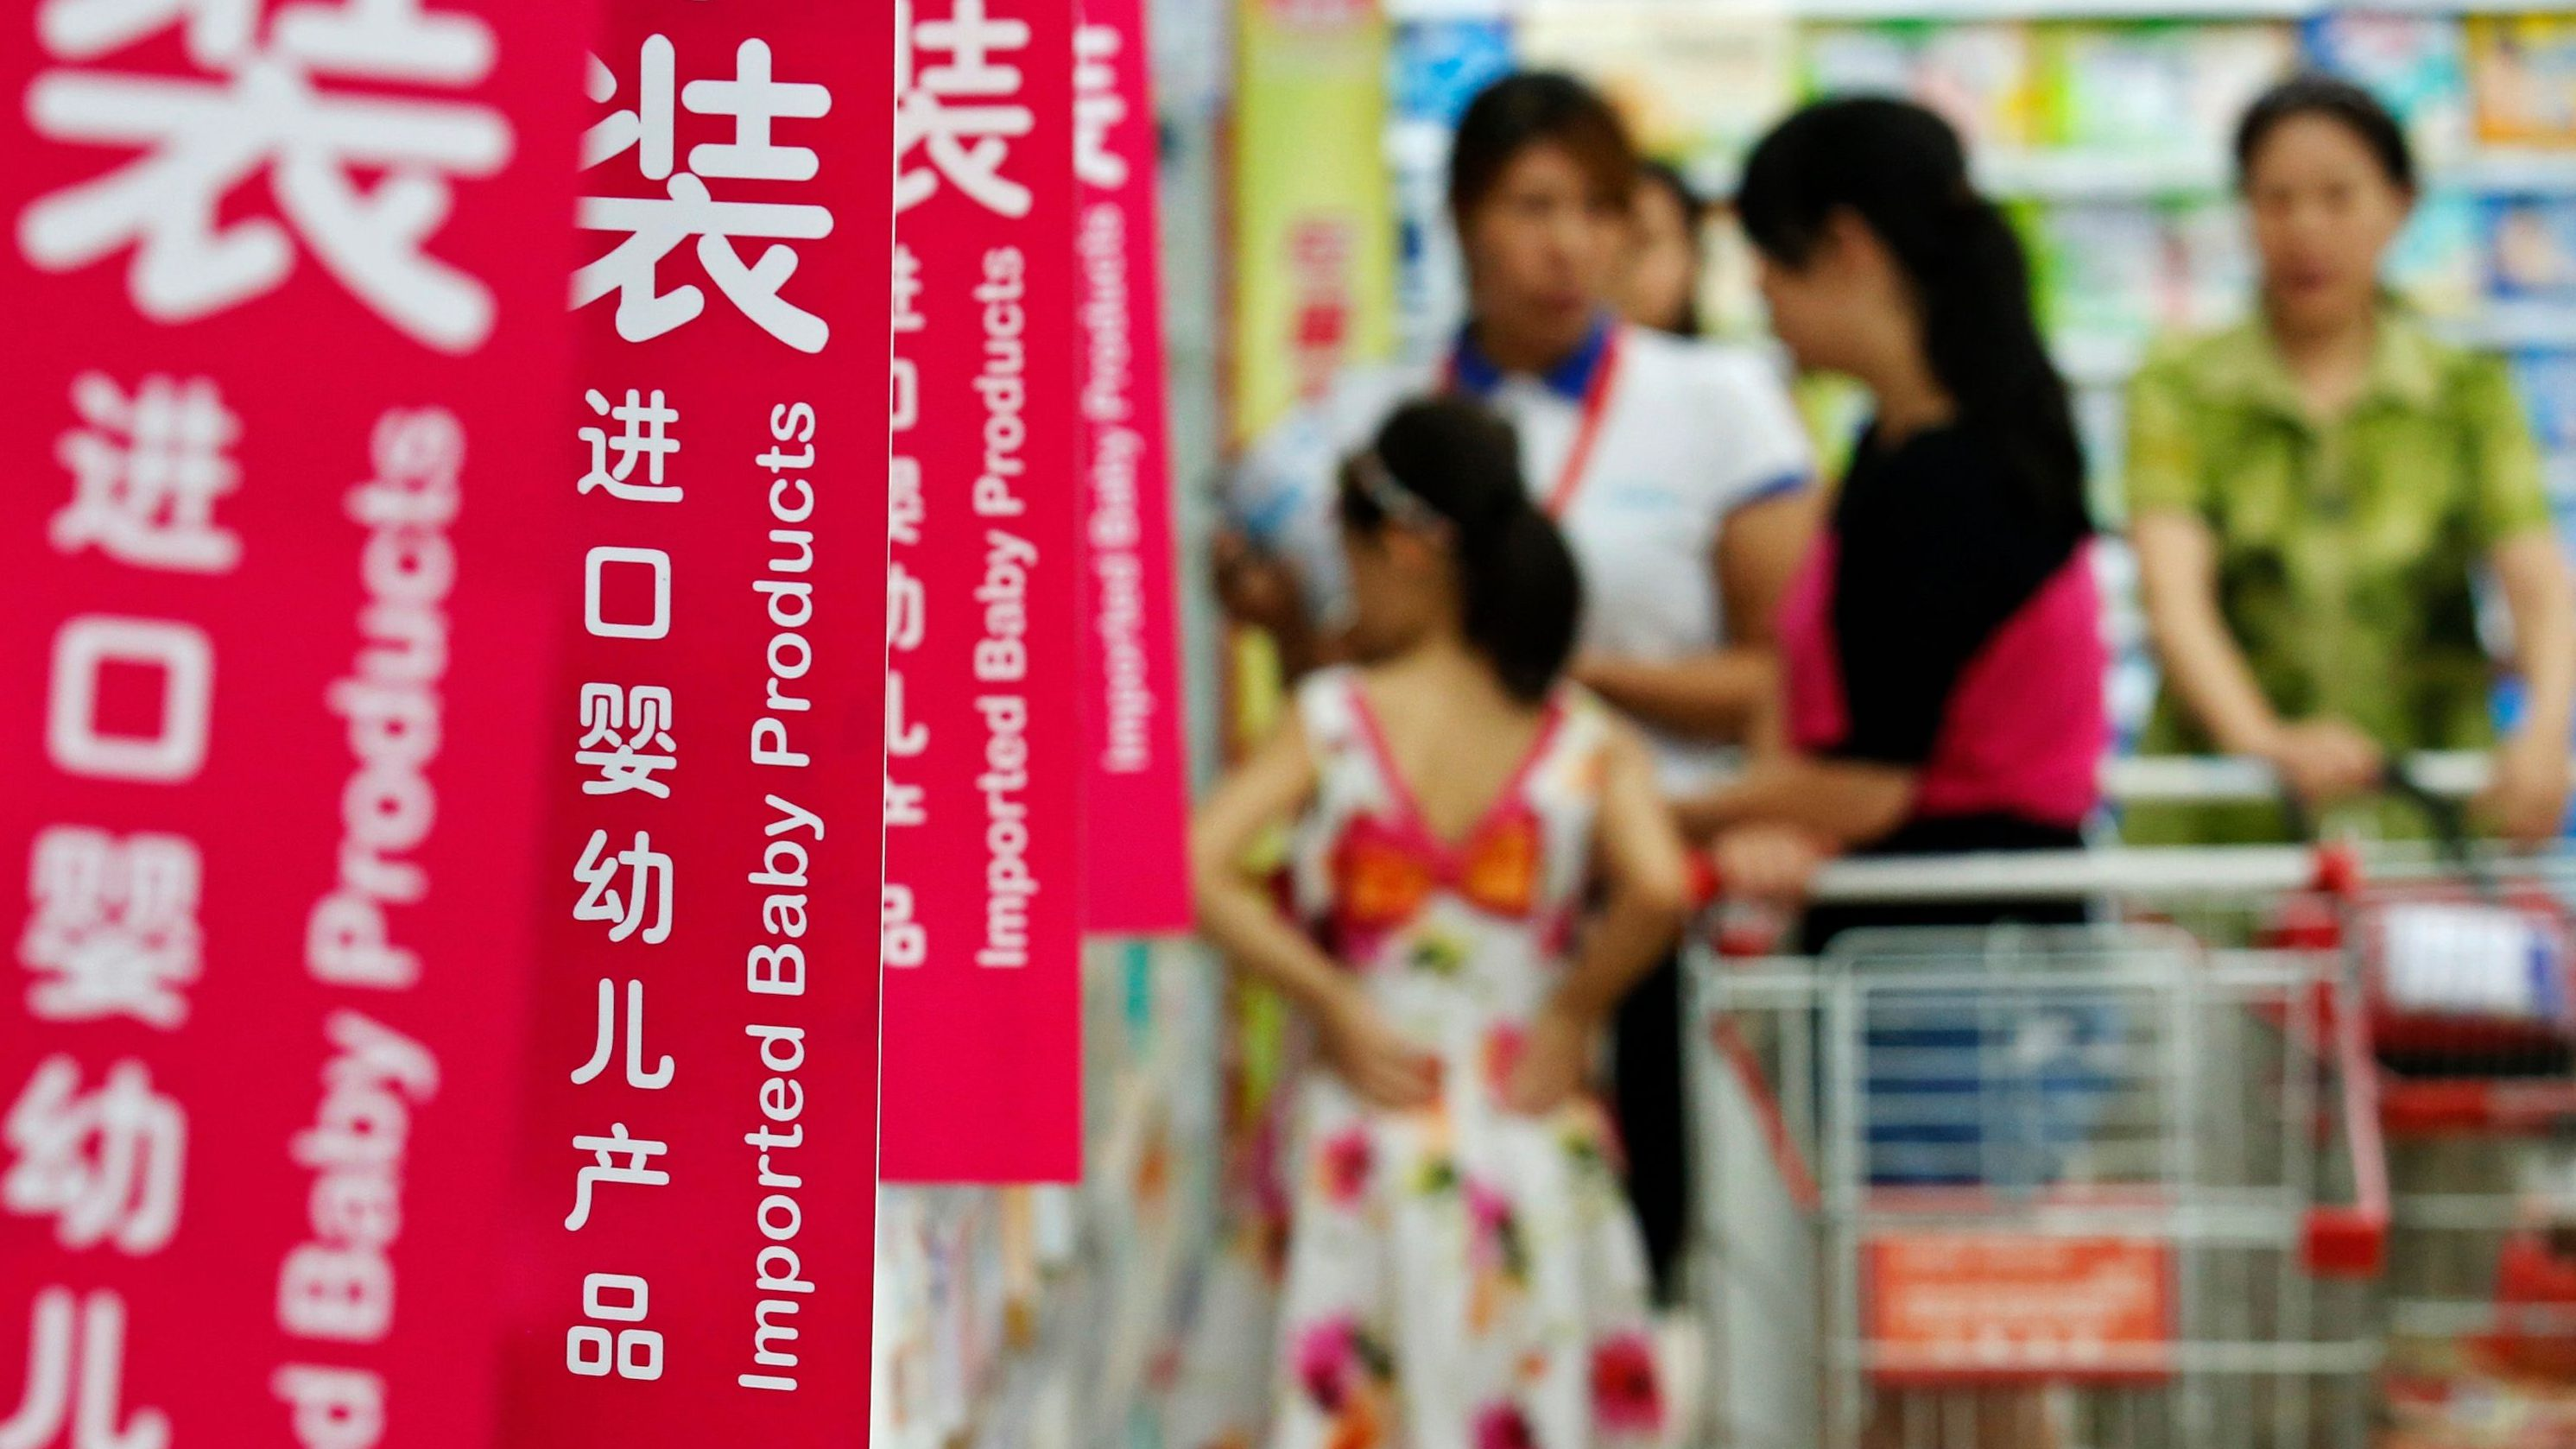 Ten years after China's melamine-laced baby formula tragedy